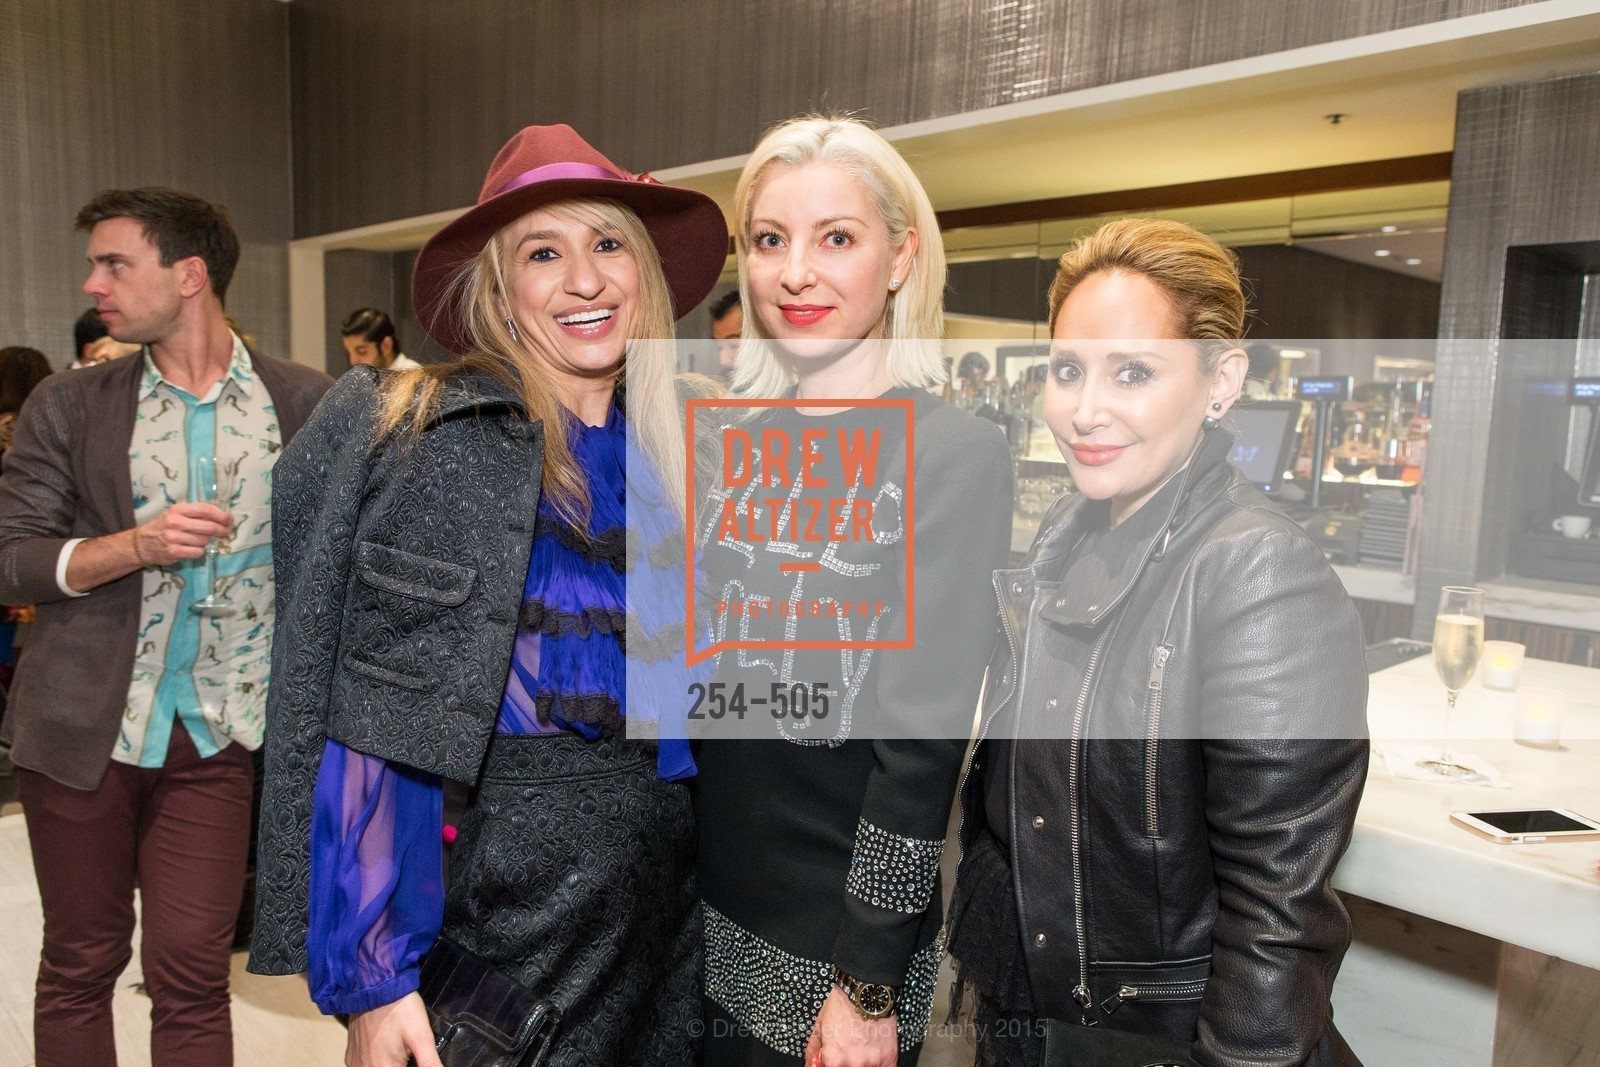 Navid Armstrong, Sonya Molodetskaya, Brenda Zarate, Libertine Cocktail Party at Neiman Marcus, Neiman Marcus, November 10th, 2015,Drew Altizer, Drew Altizer Photography, full-service agency, private events, San Francisco photographer, photographer california